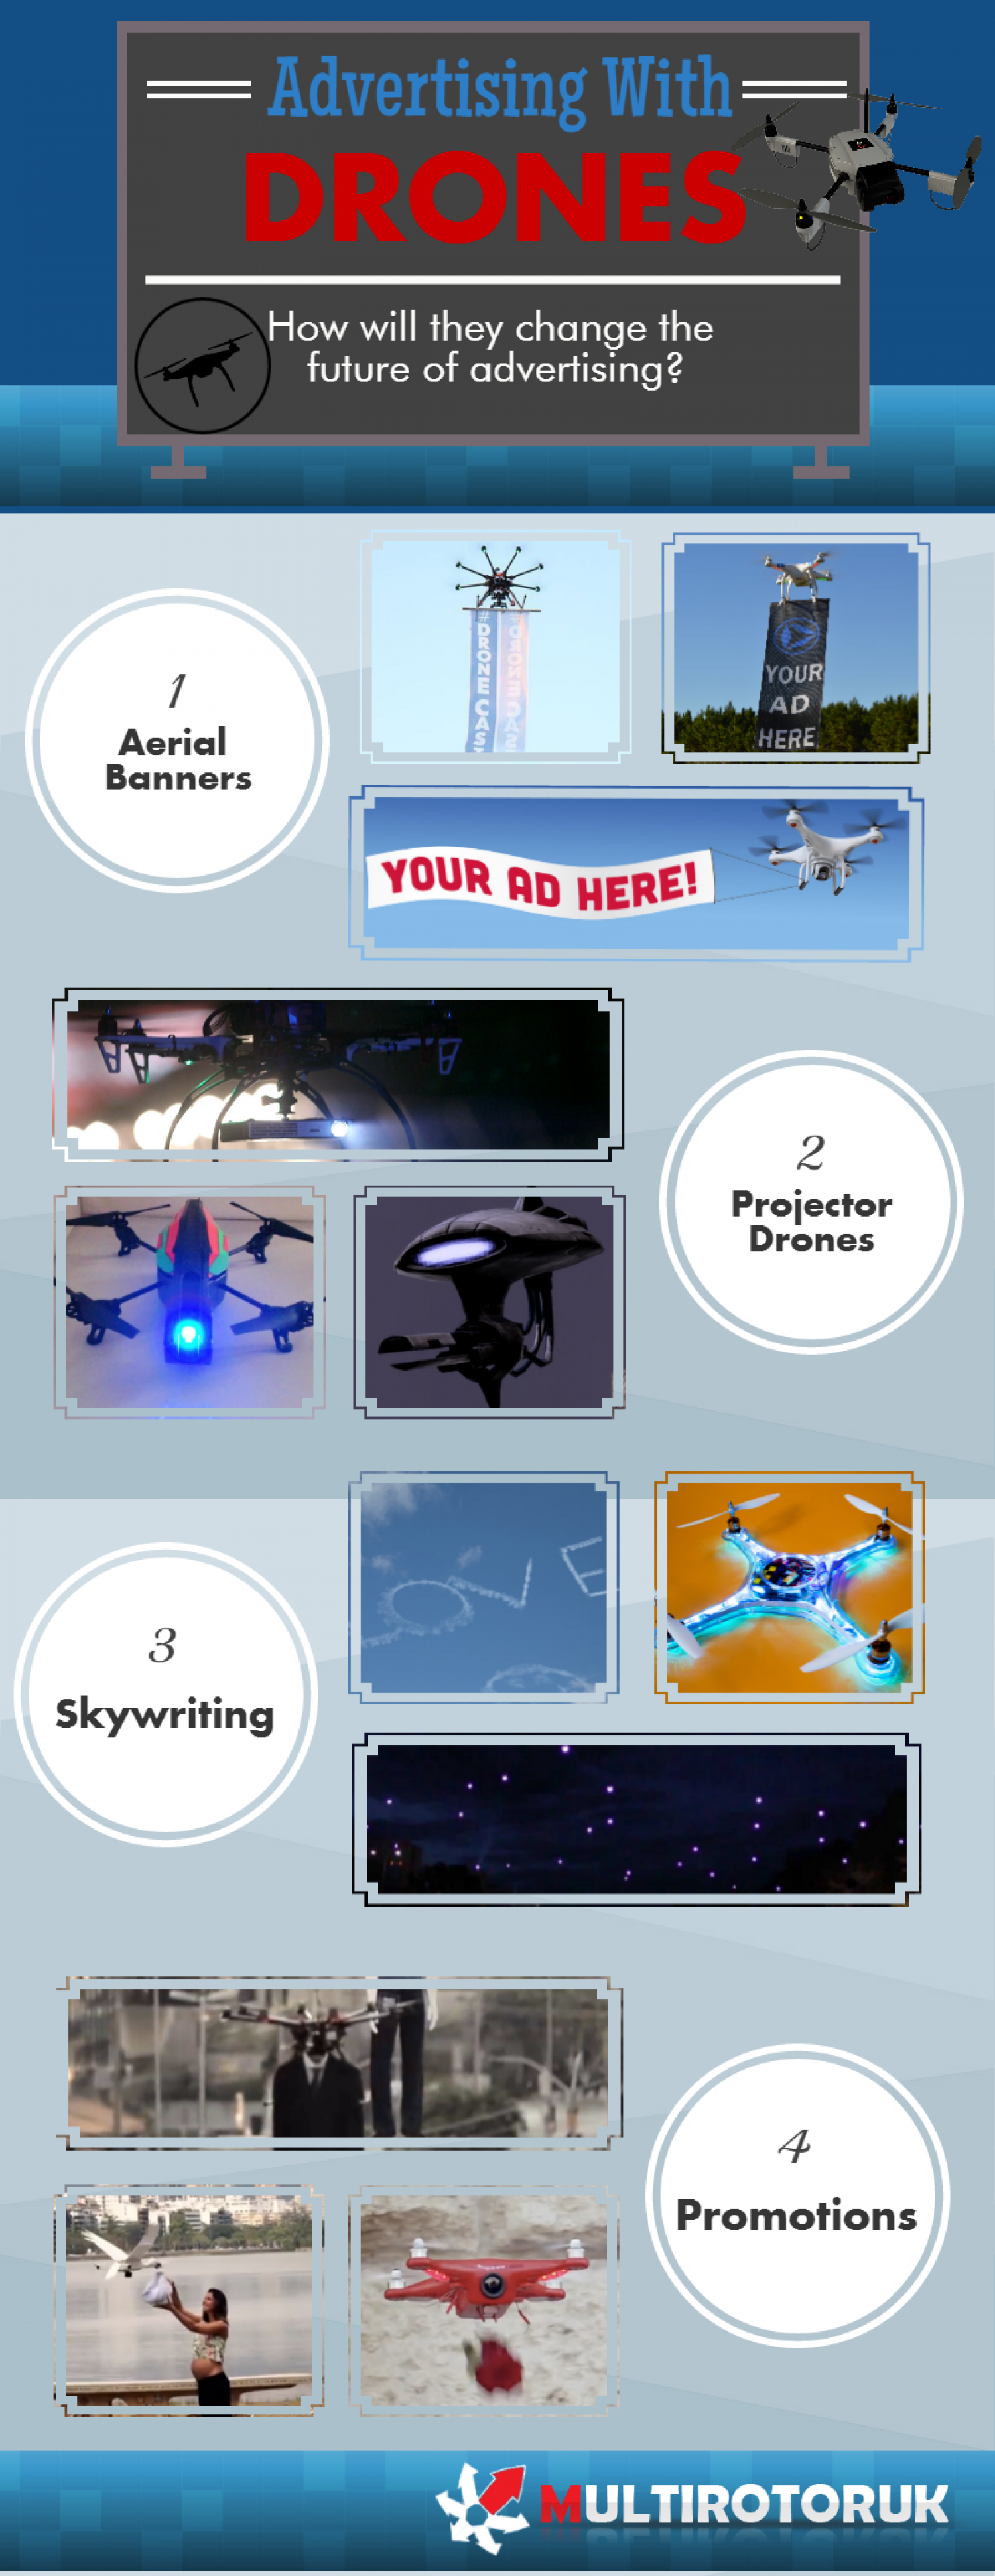 Drones in Advertising Infographic